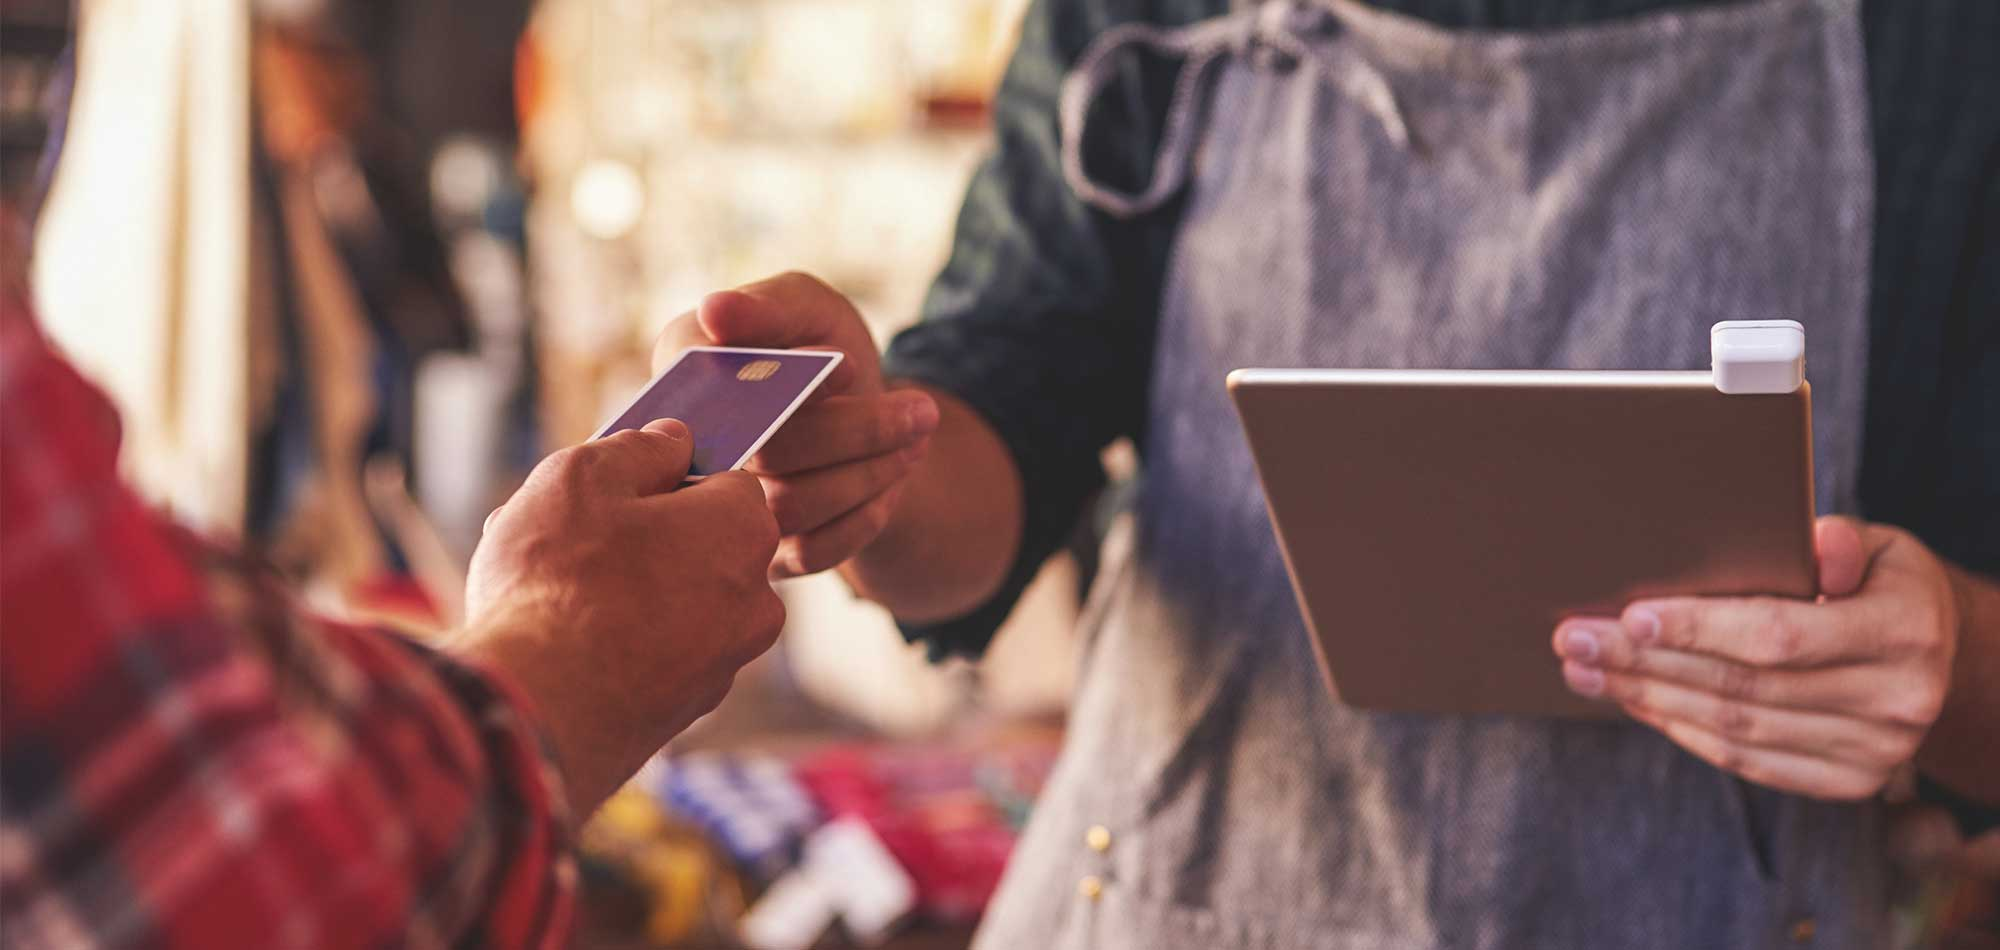 3 Common Problems Retailers Have with BYOD and What You Can Do to Avoid Them